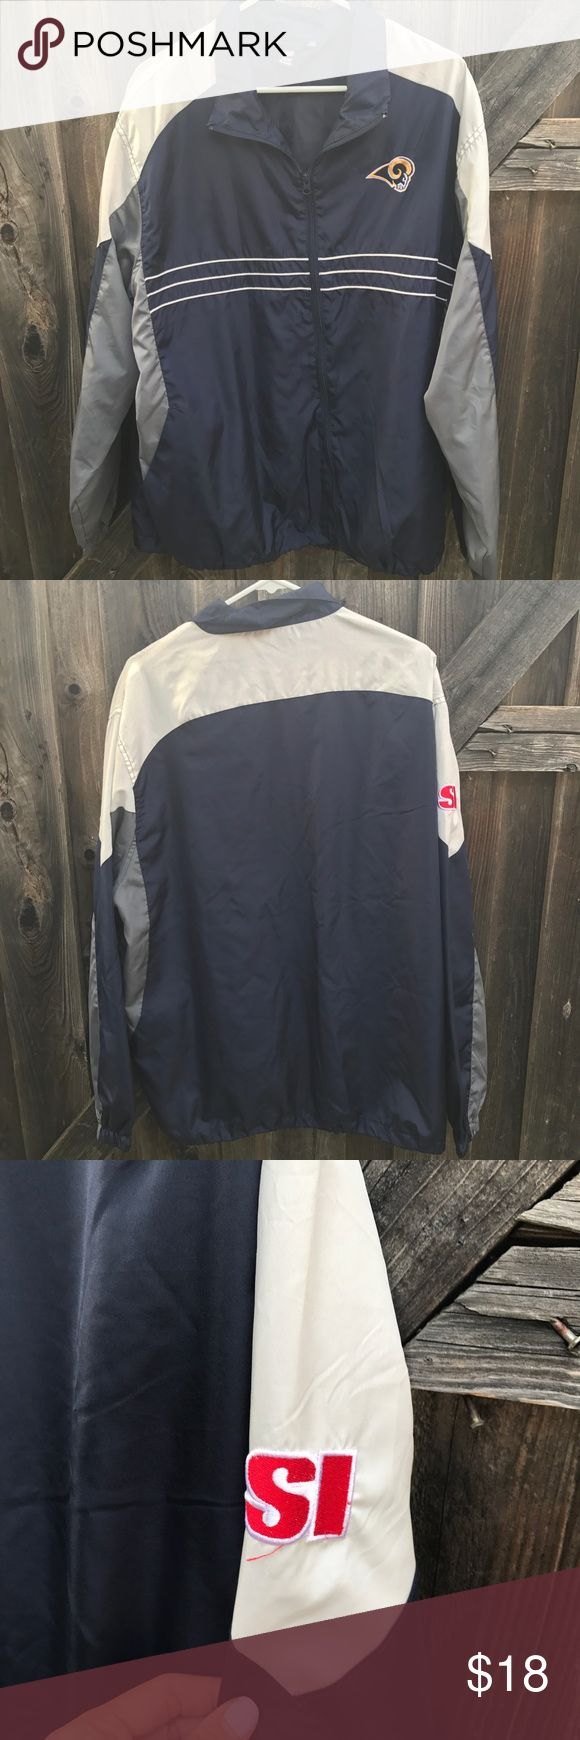 NFL men's Light Weight Jacket NFL team apparel rebook los angeles rams men's light weight jacket  Size Xl  No stains or rips  Length 20 inches Armpit to armpit 26.5 Shoulder to shoulder 21 Arm length from shoulder 33.5 A20 NFL Jackets & Coats Lightweight & Shirt Jackets